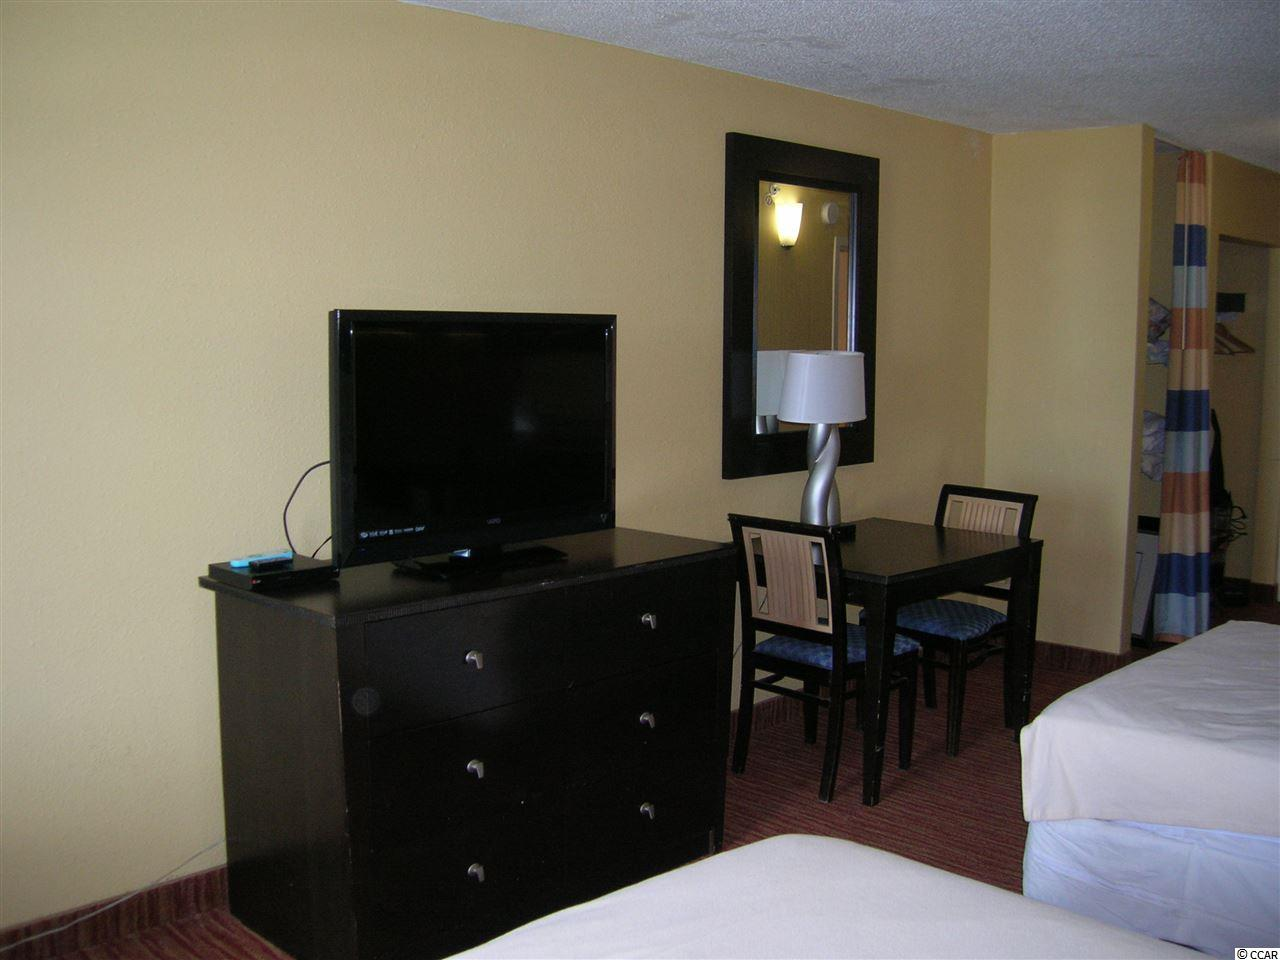 Contact your Realtor for this Efficiency bedroom condo for sale at  Landmark Resort